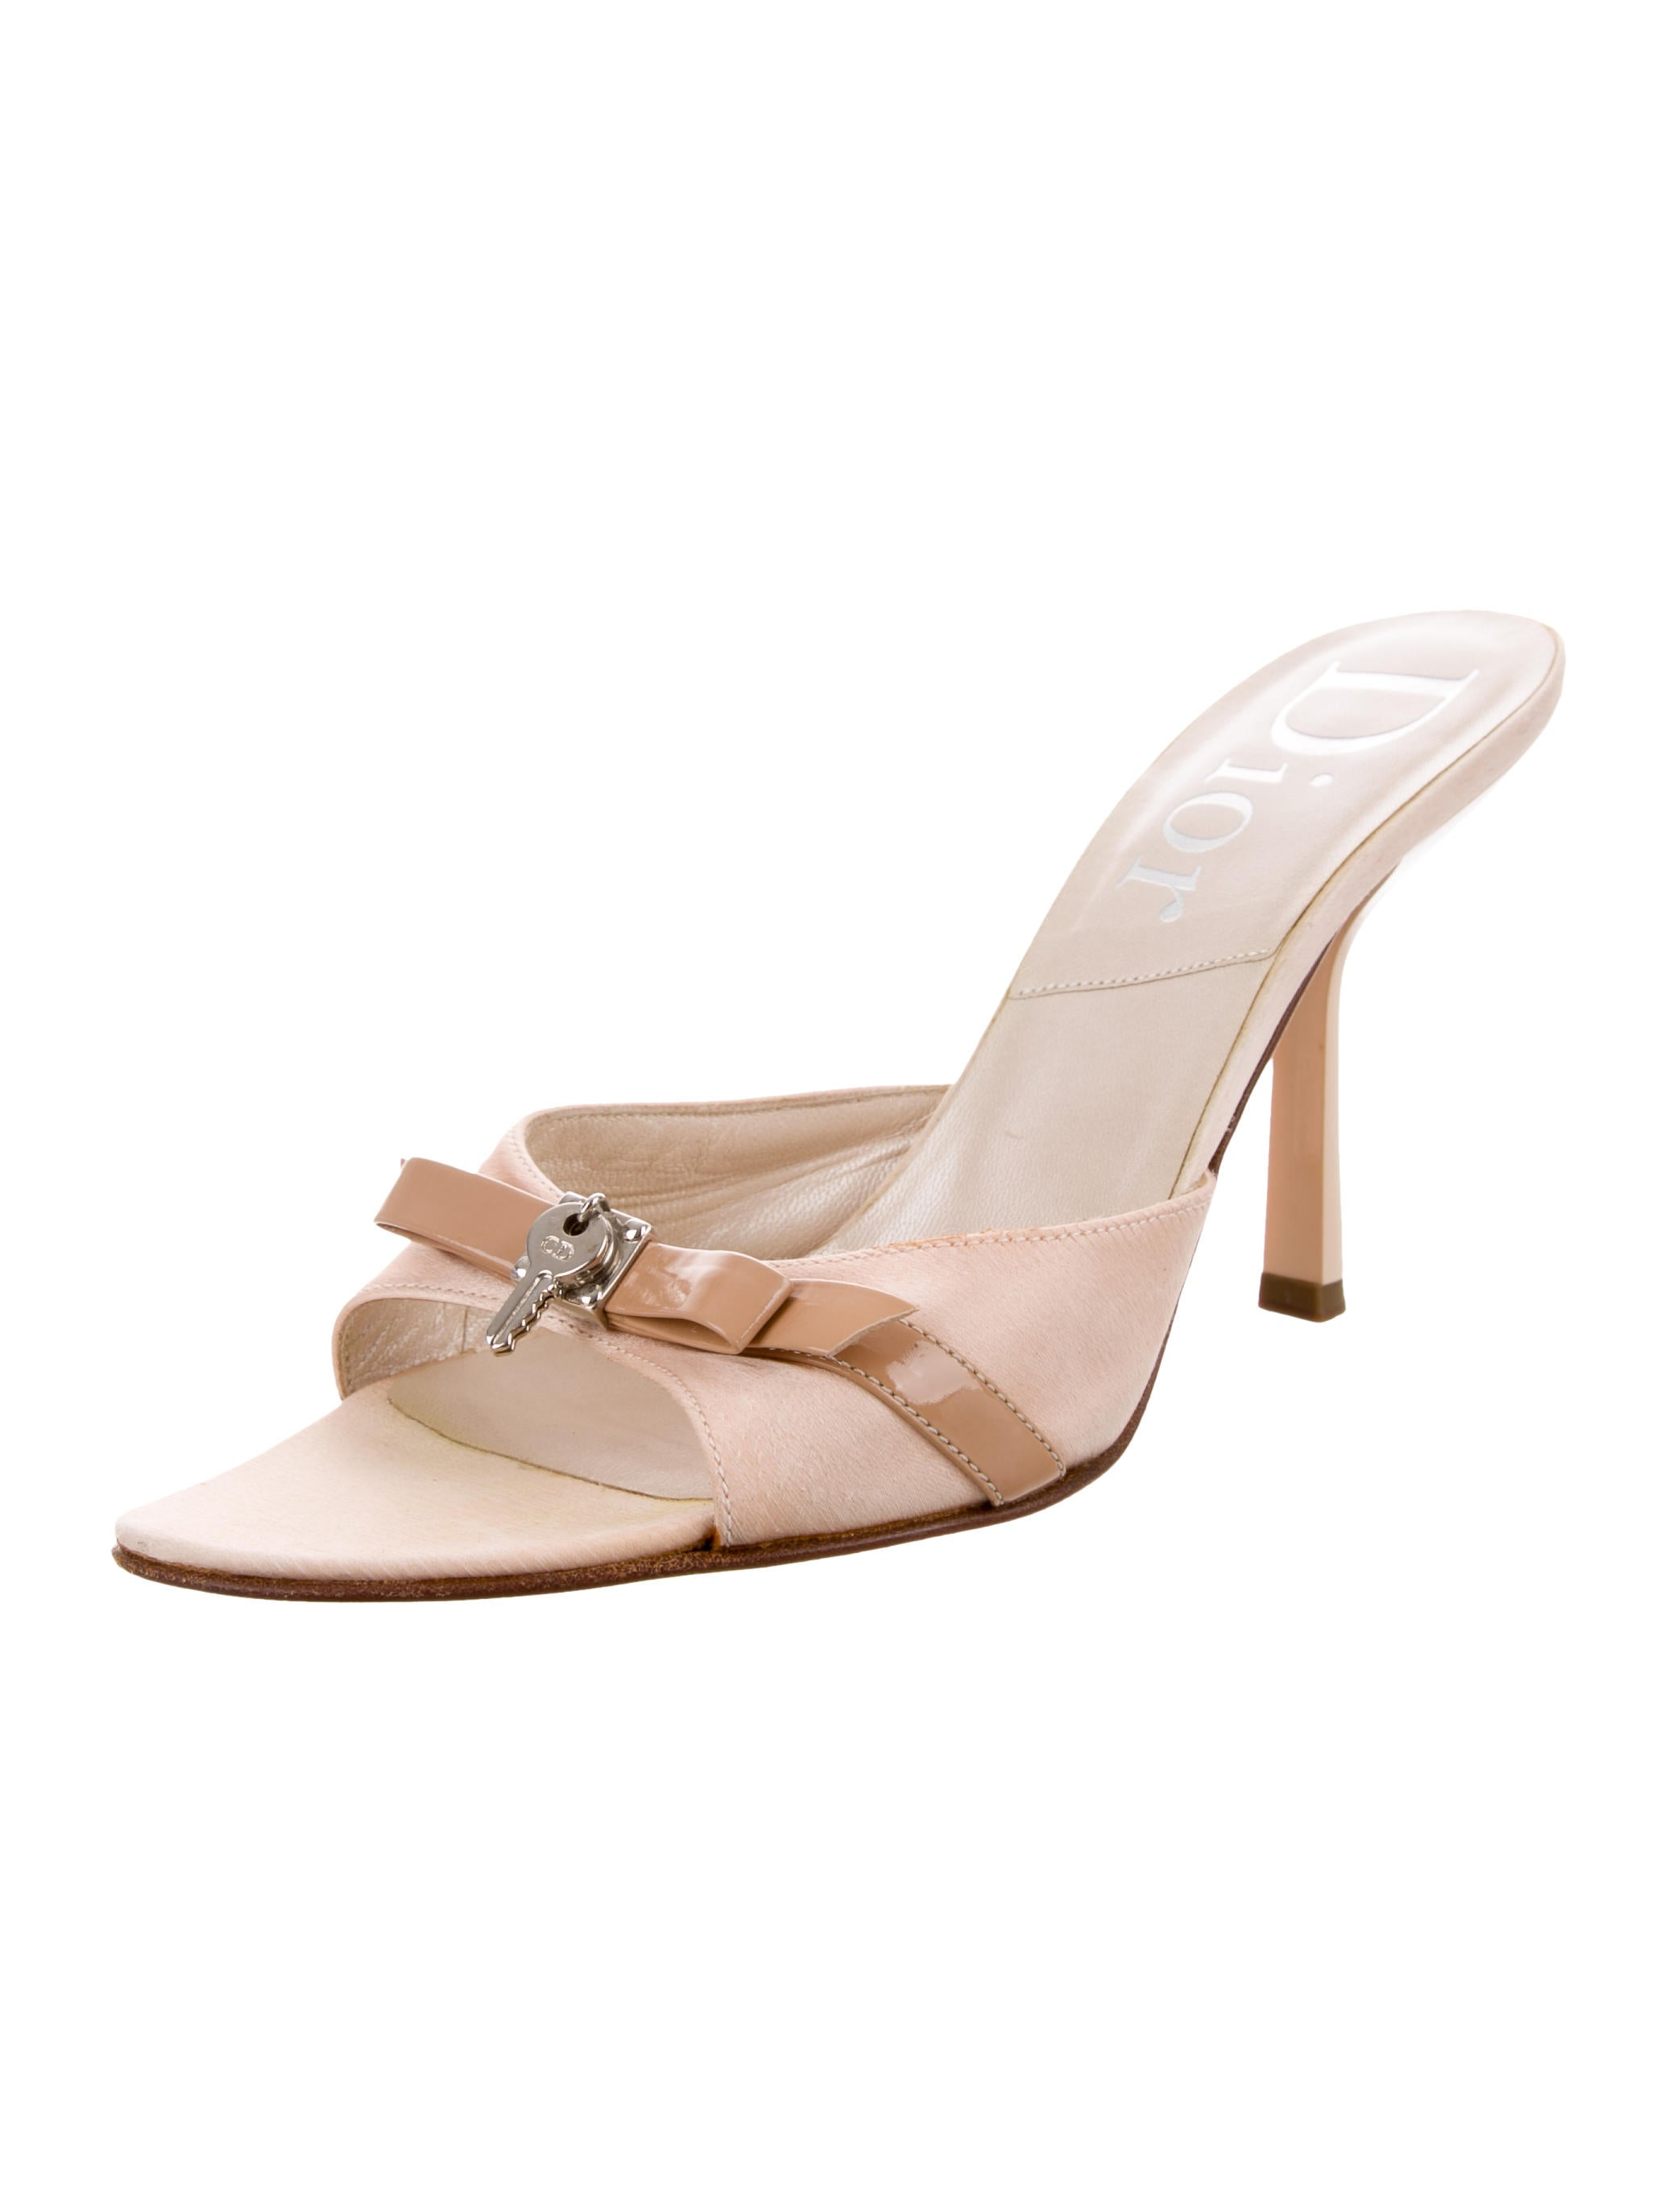 Christian Dior Satin Embellished Slide Sandals 2014 newest cheap sale 2014 get authentic for sale PqsF1rcq